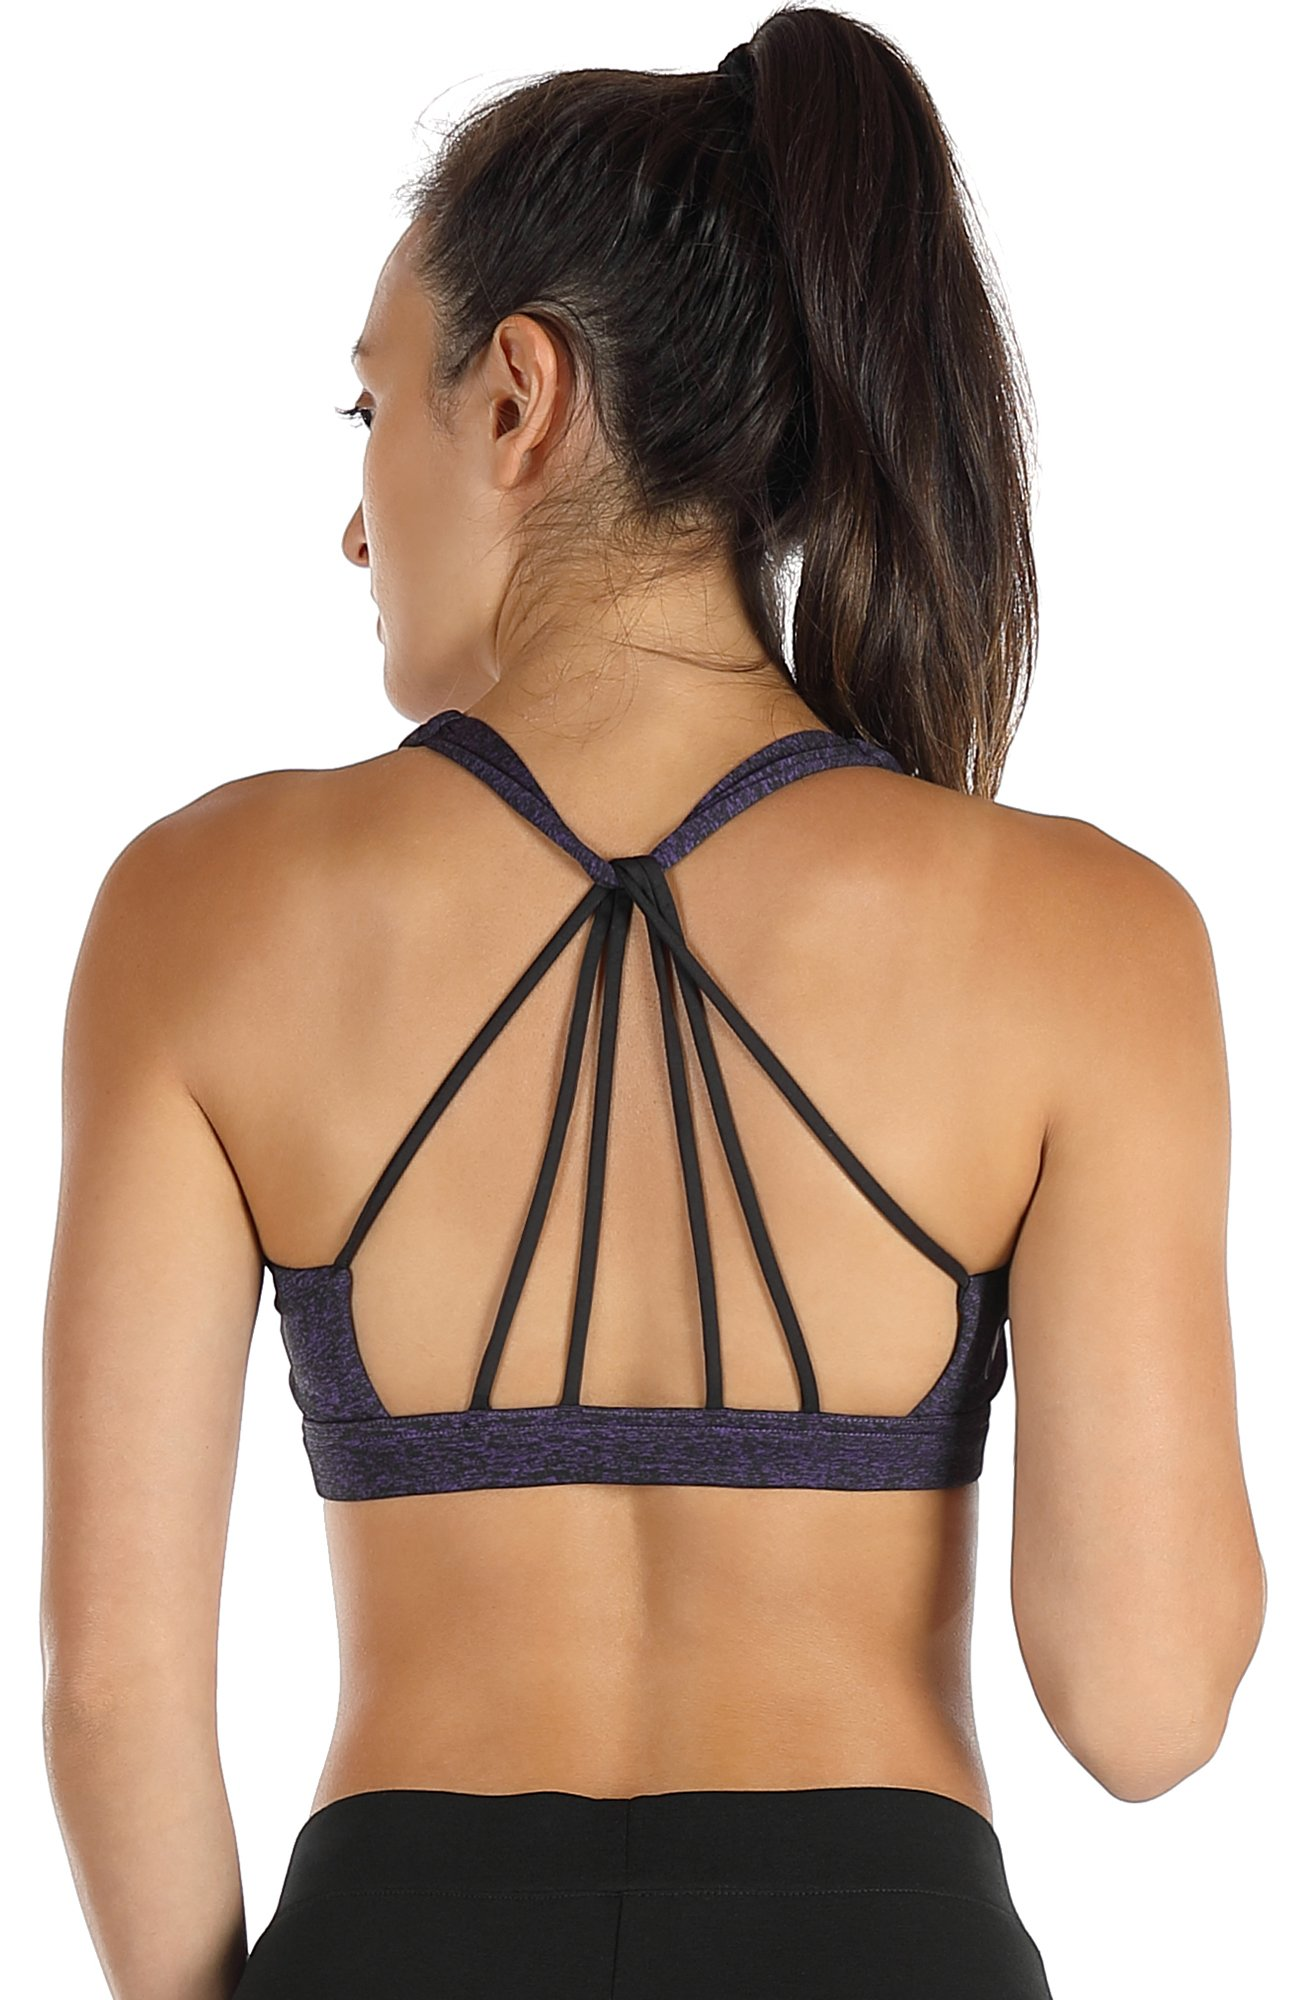 icyzone Padded Strappy Sports Bra Yoga Tops Activewear Workout Clothes for Women (M, Purple) by icyzone